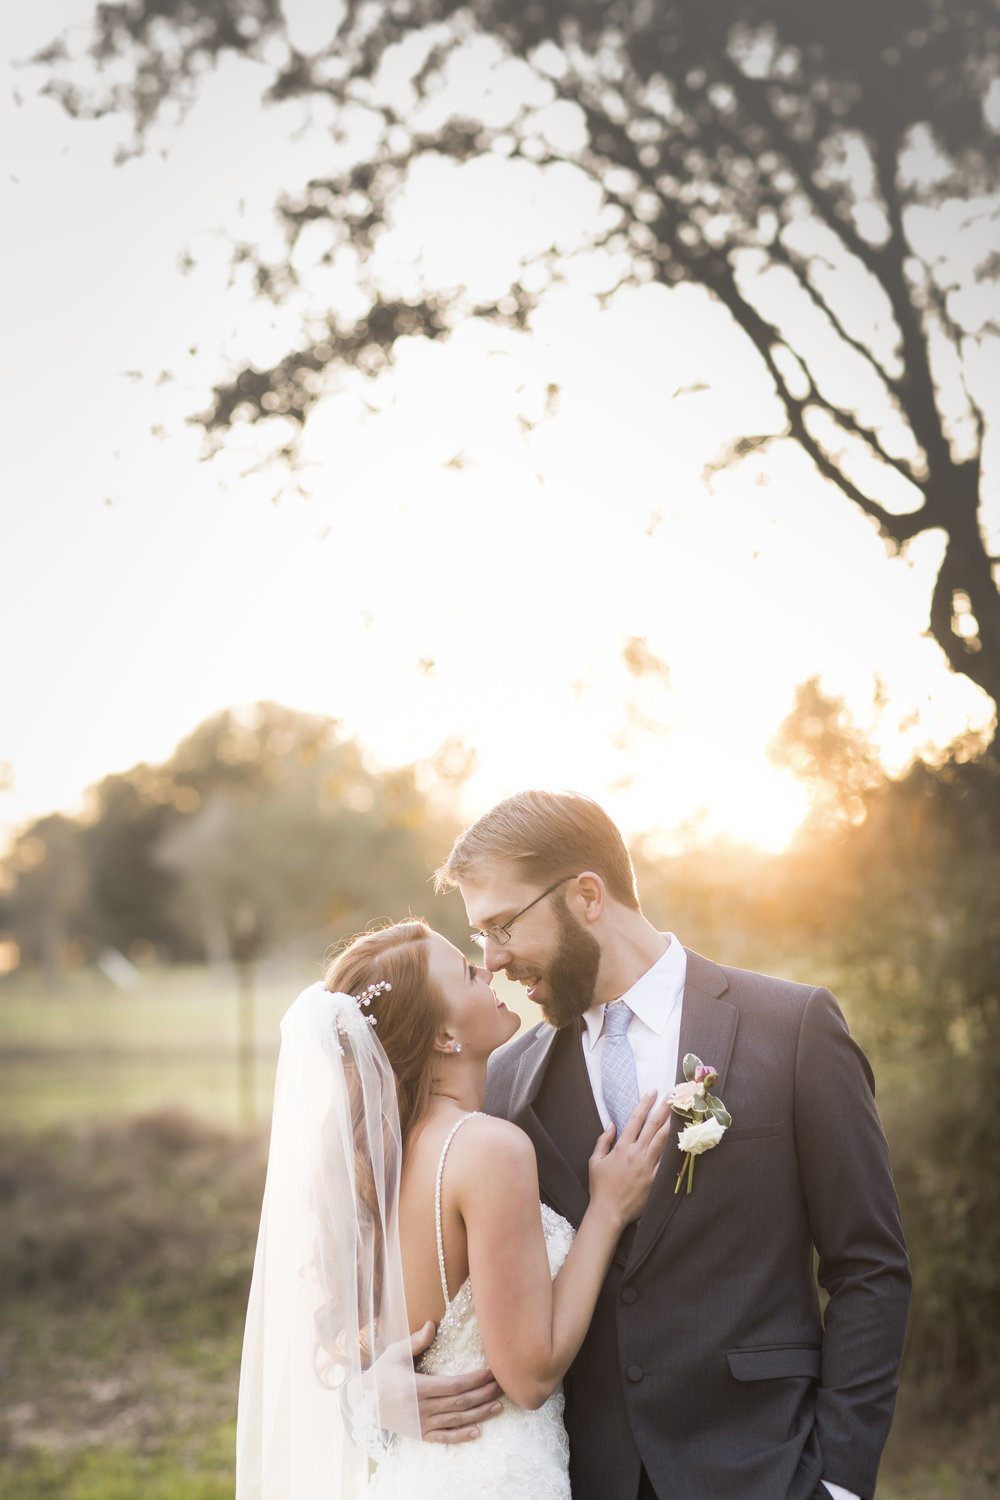 PREVIEWS-Megan+Ryan-065.jpg